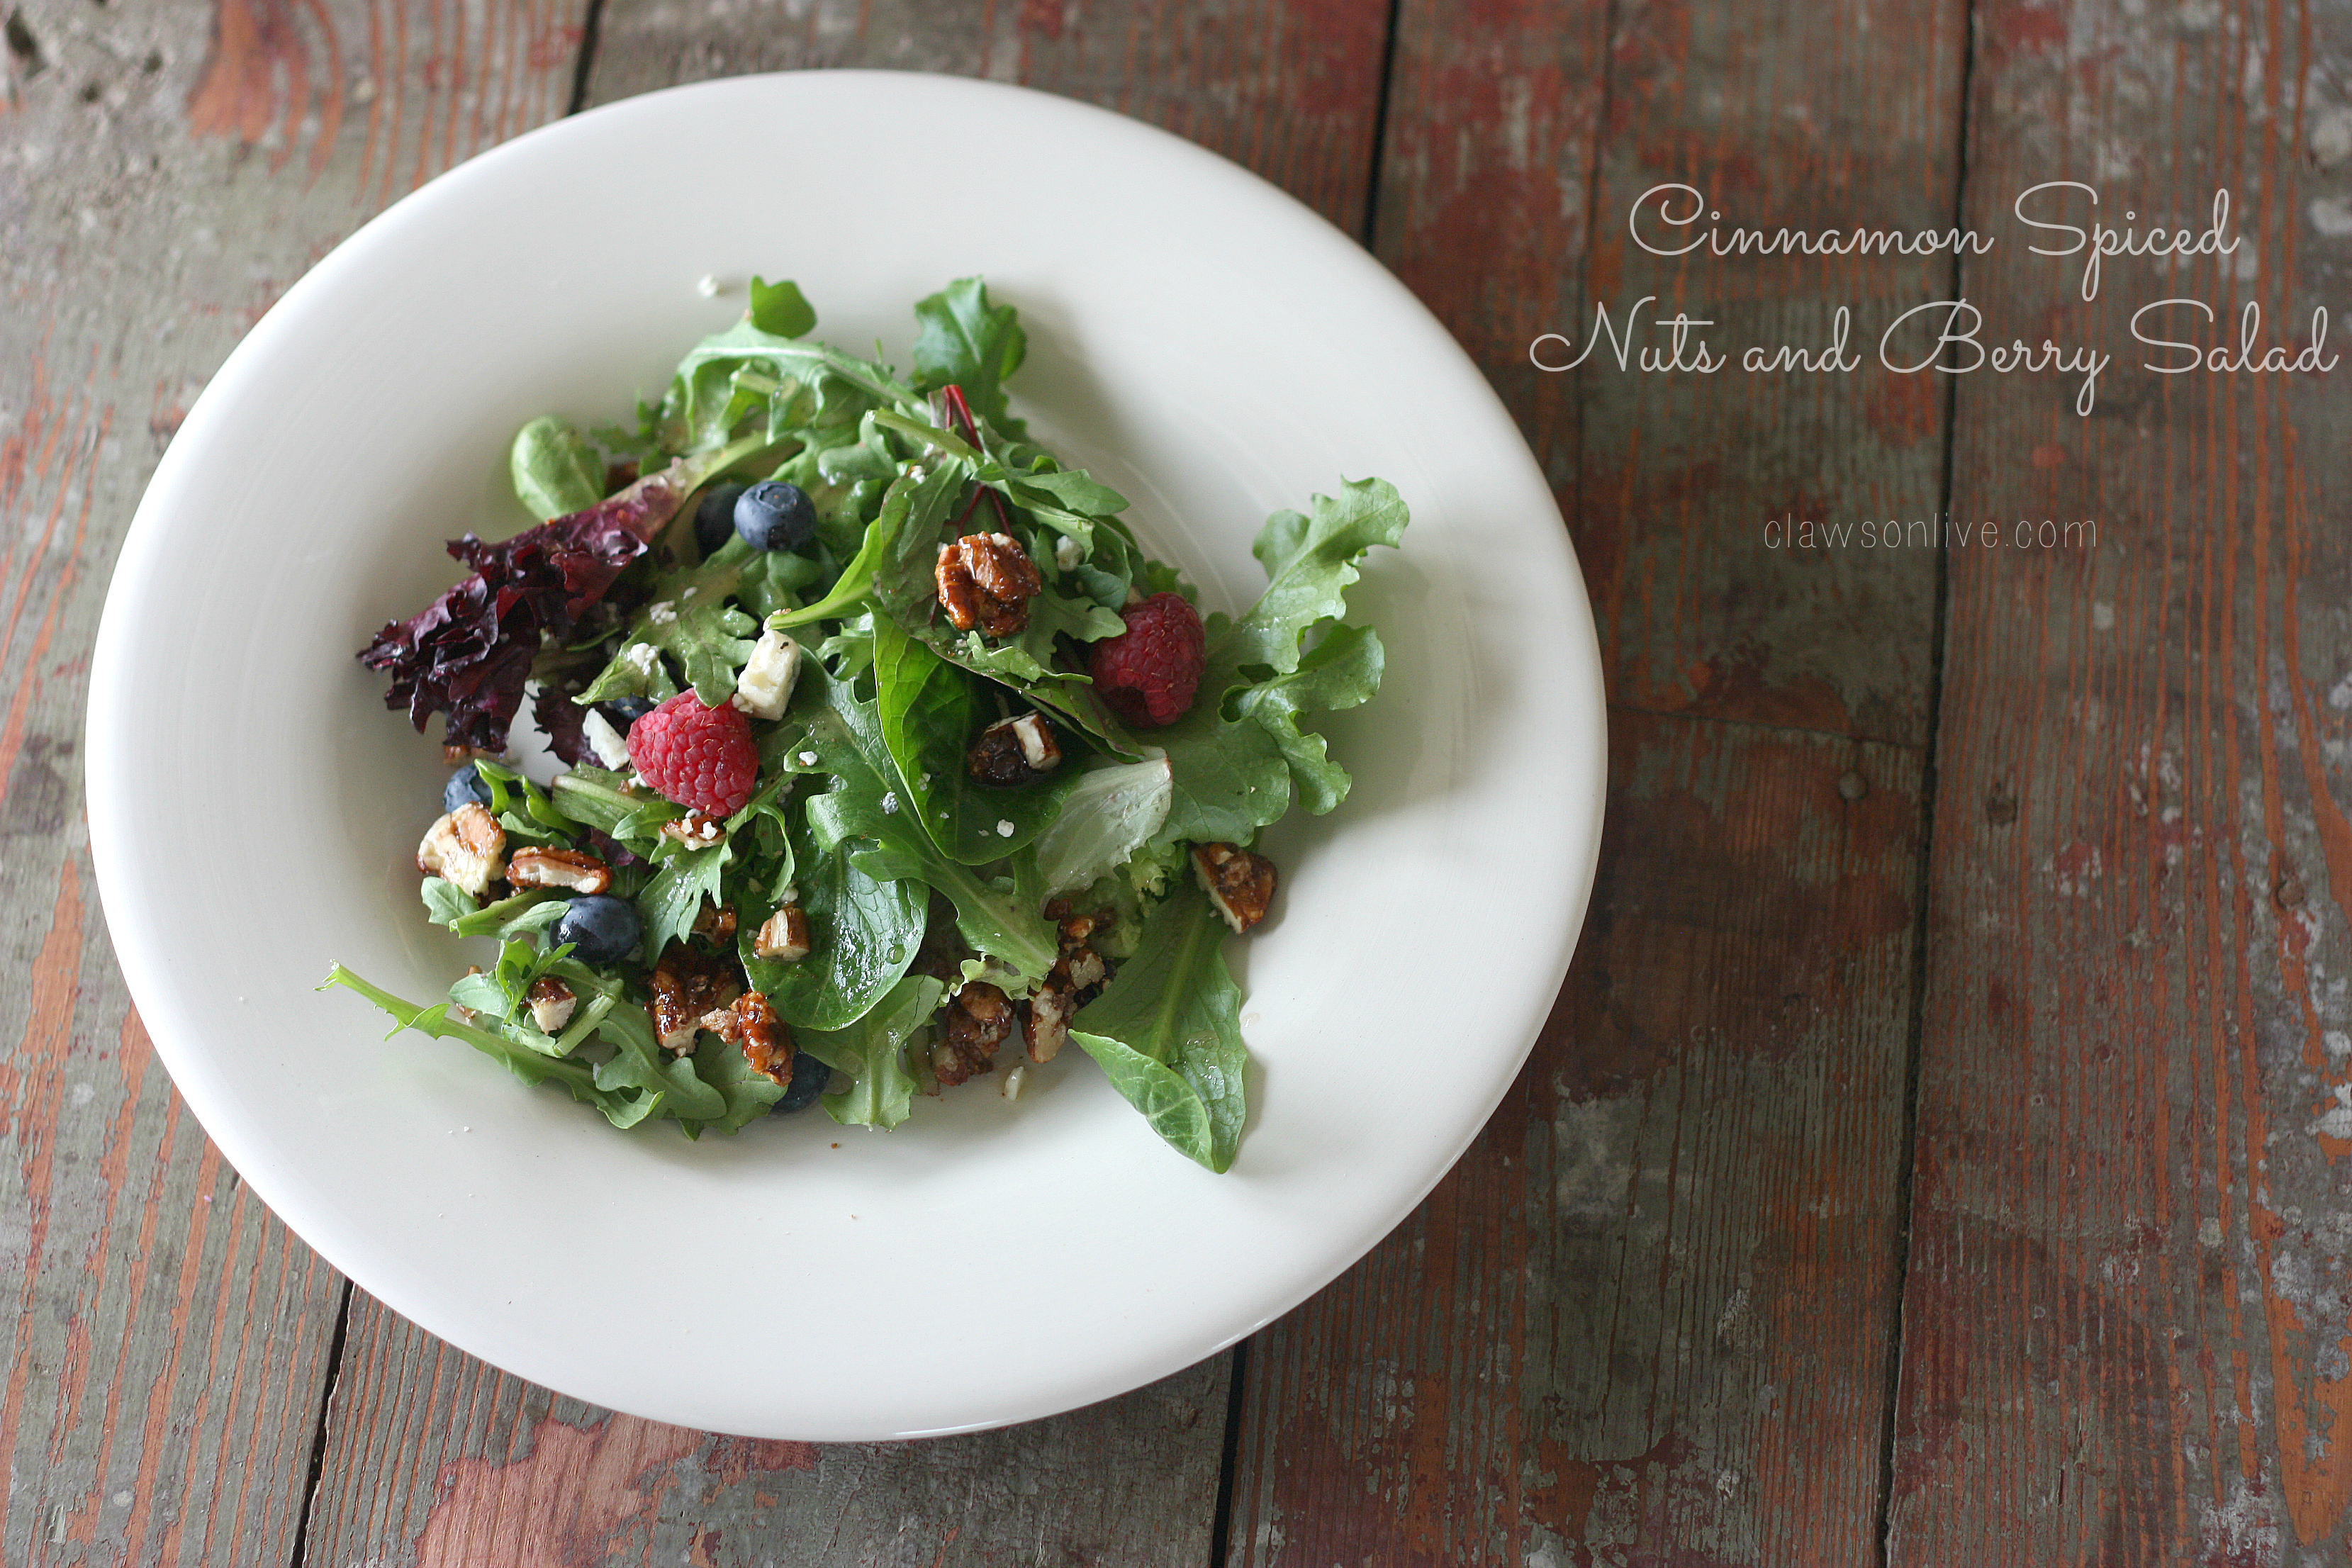 Cinnamon Spiced Nuts and Berry Salad